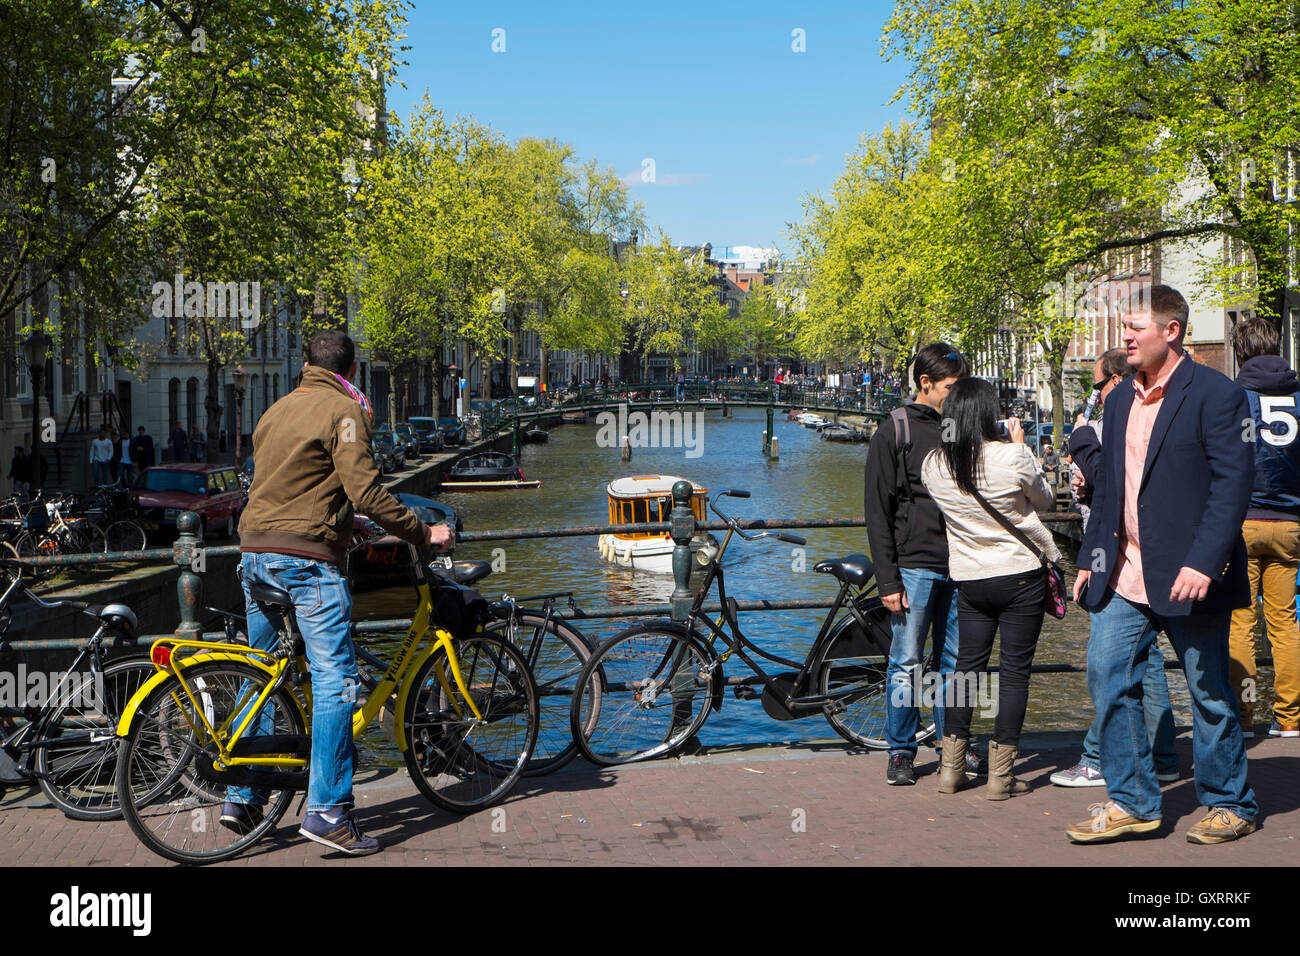 Bicycles and boats on a canal, Amsterdam, Holland, Netherlands Stock Photo